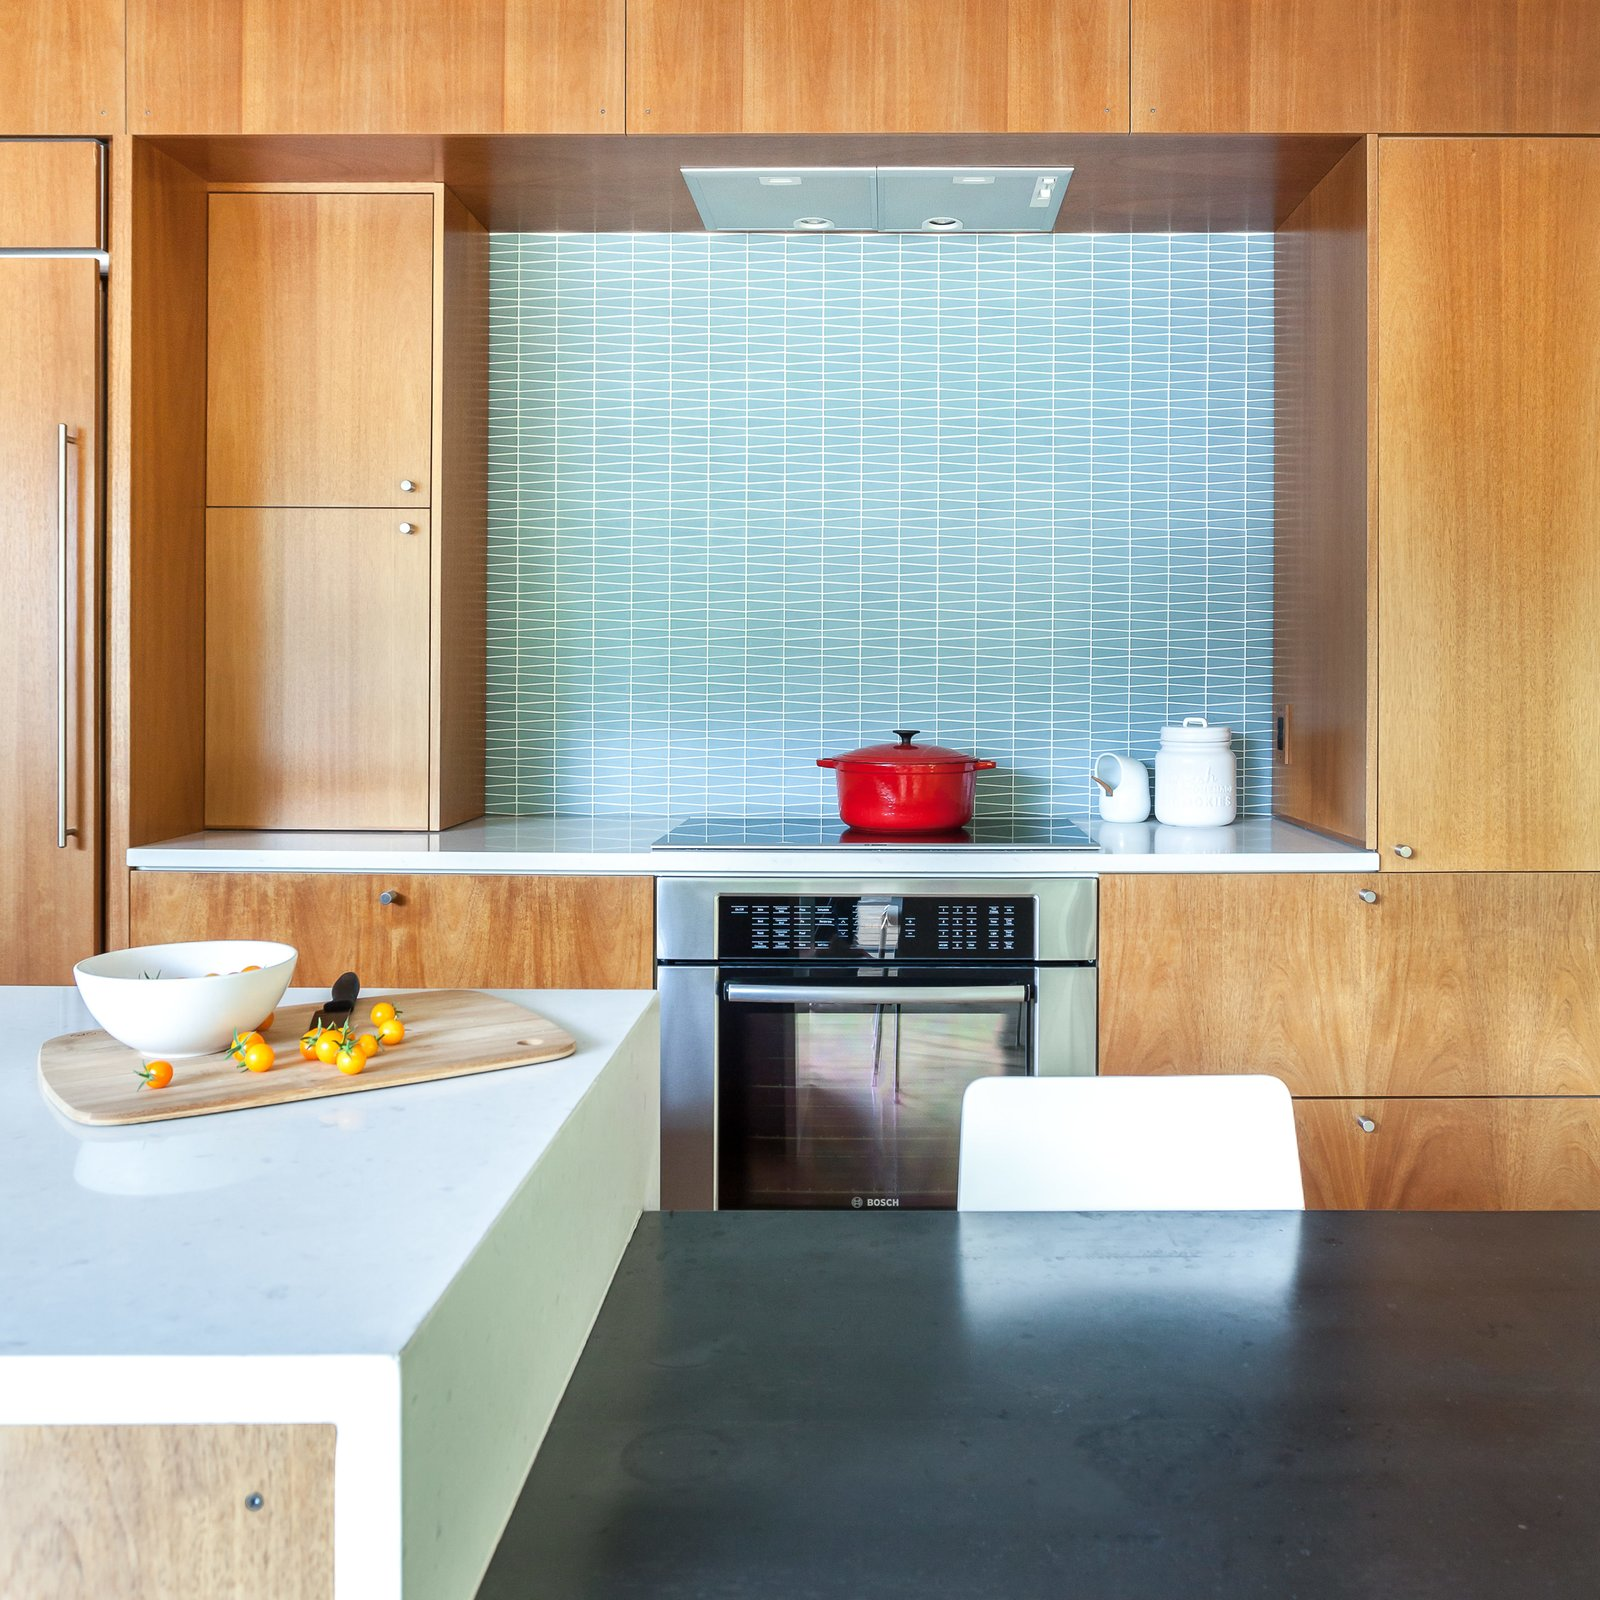 Photo 3 of 26 in 25 Backsplash Ideas For Your Kitchen Renovation - Dwell